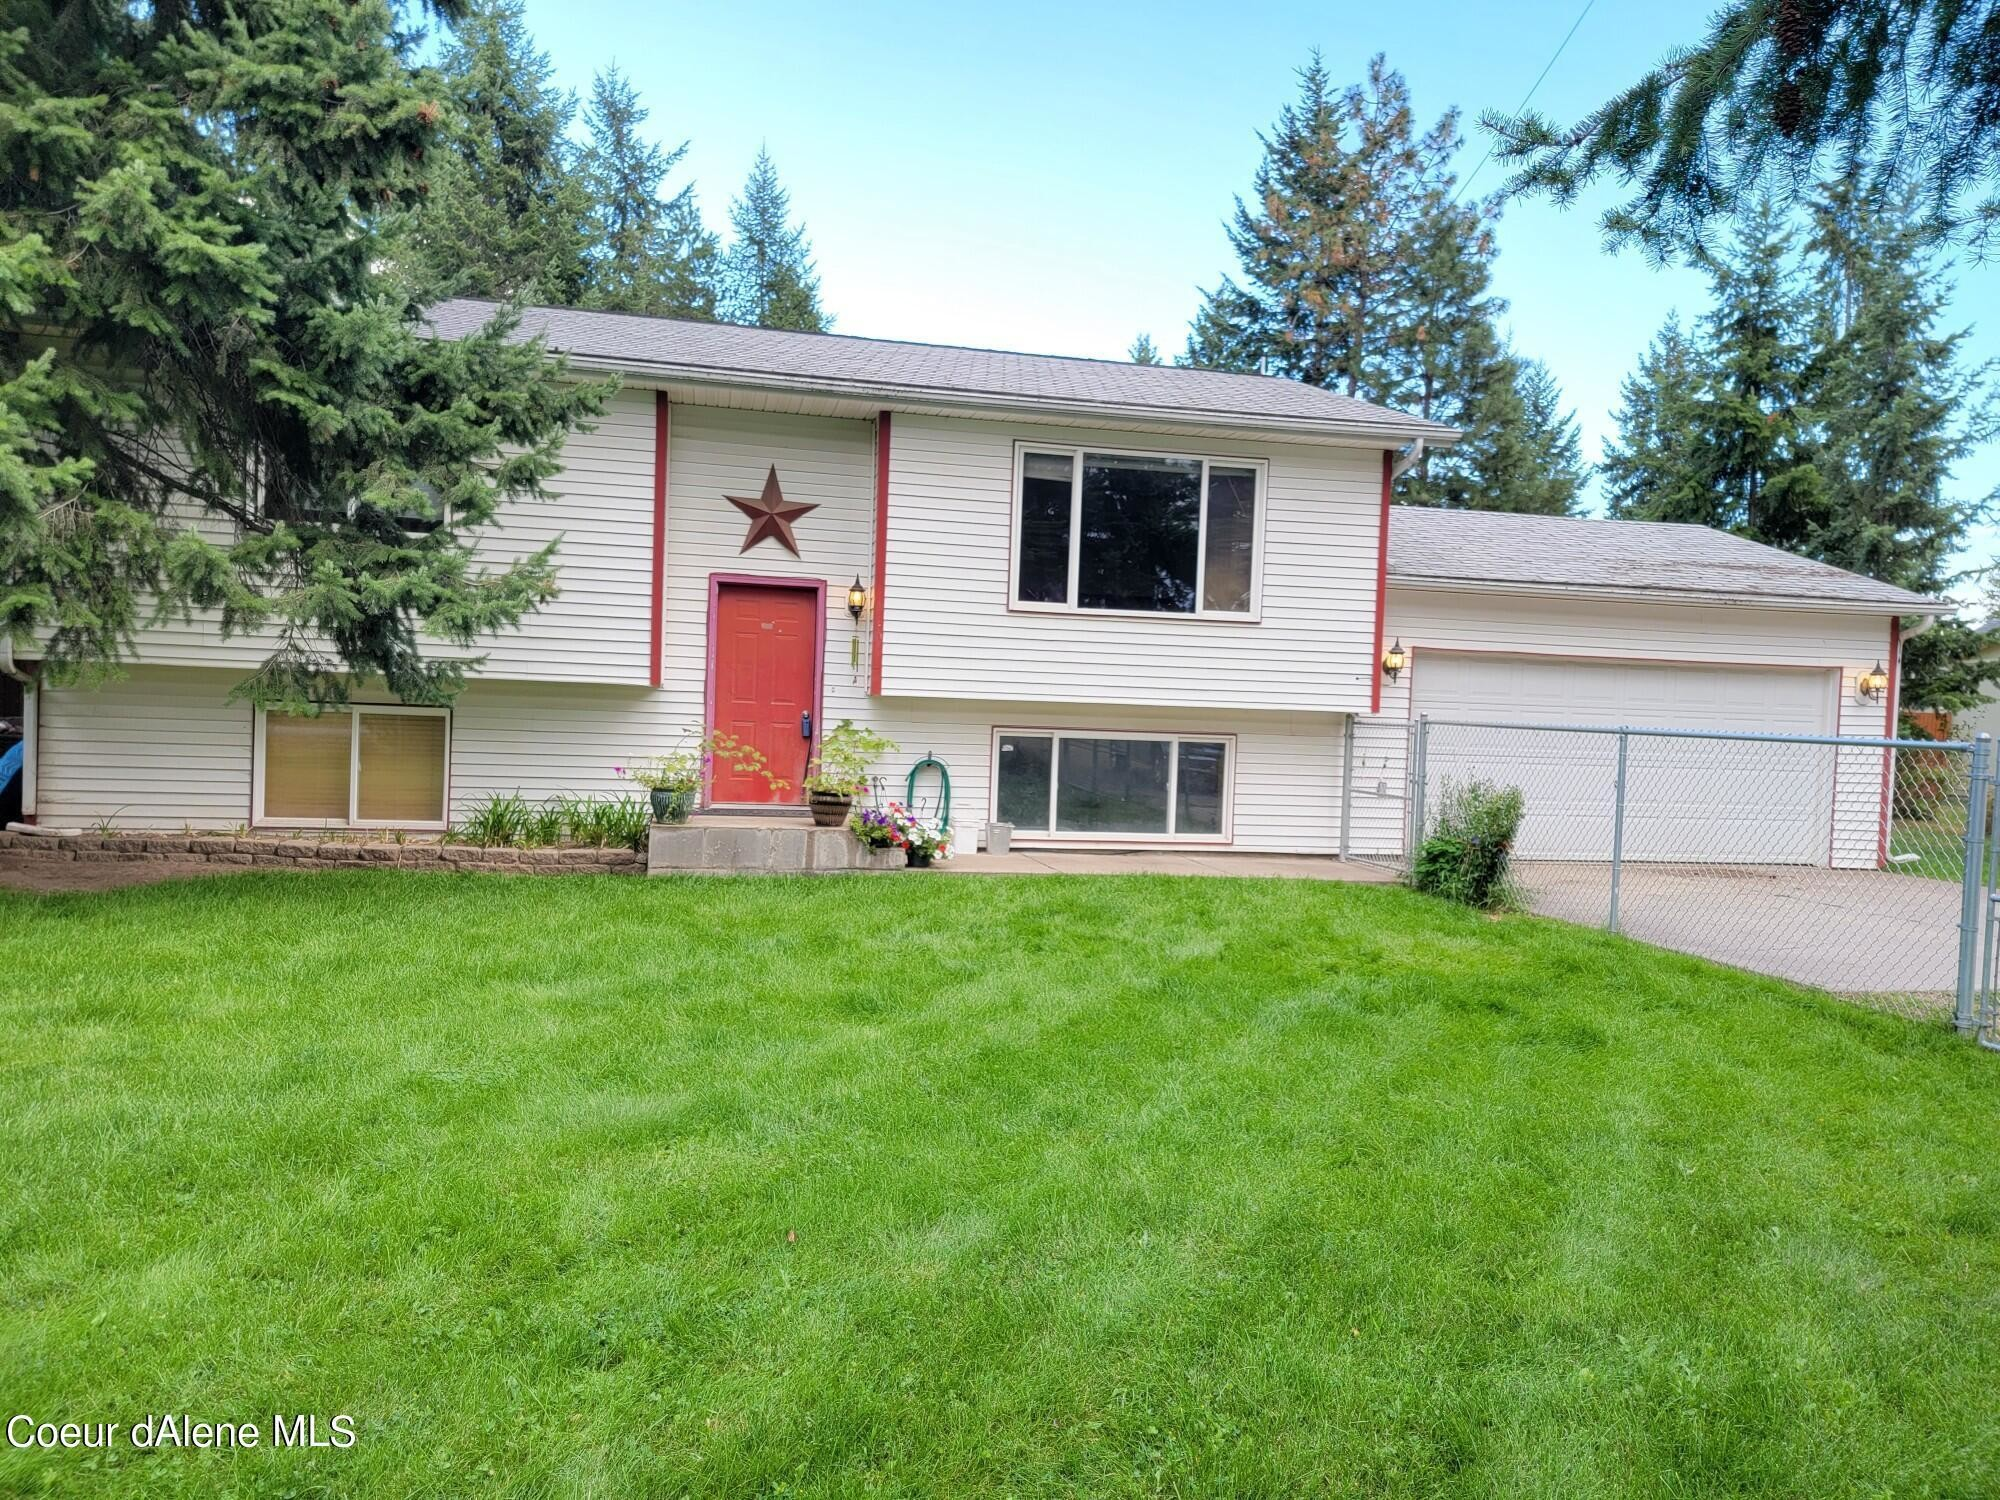 1974 SqFt House In Mill River